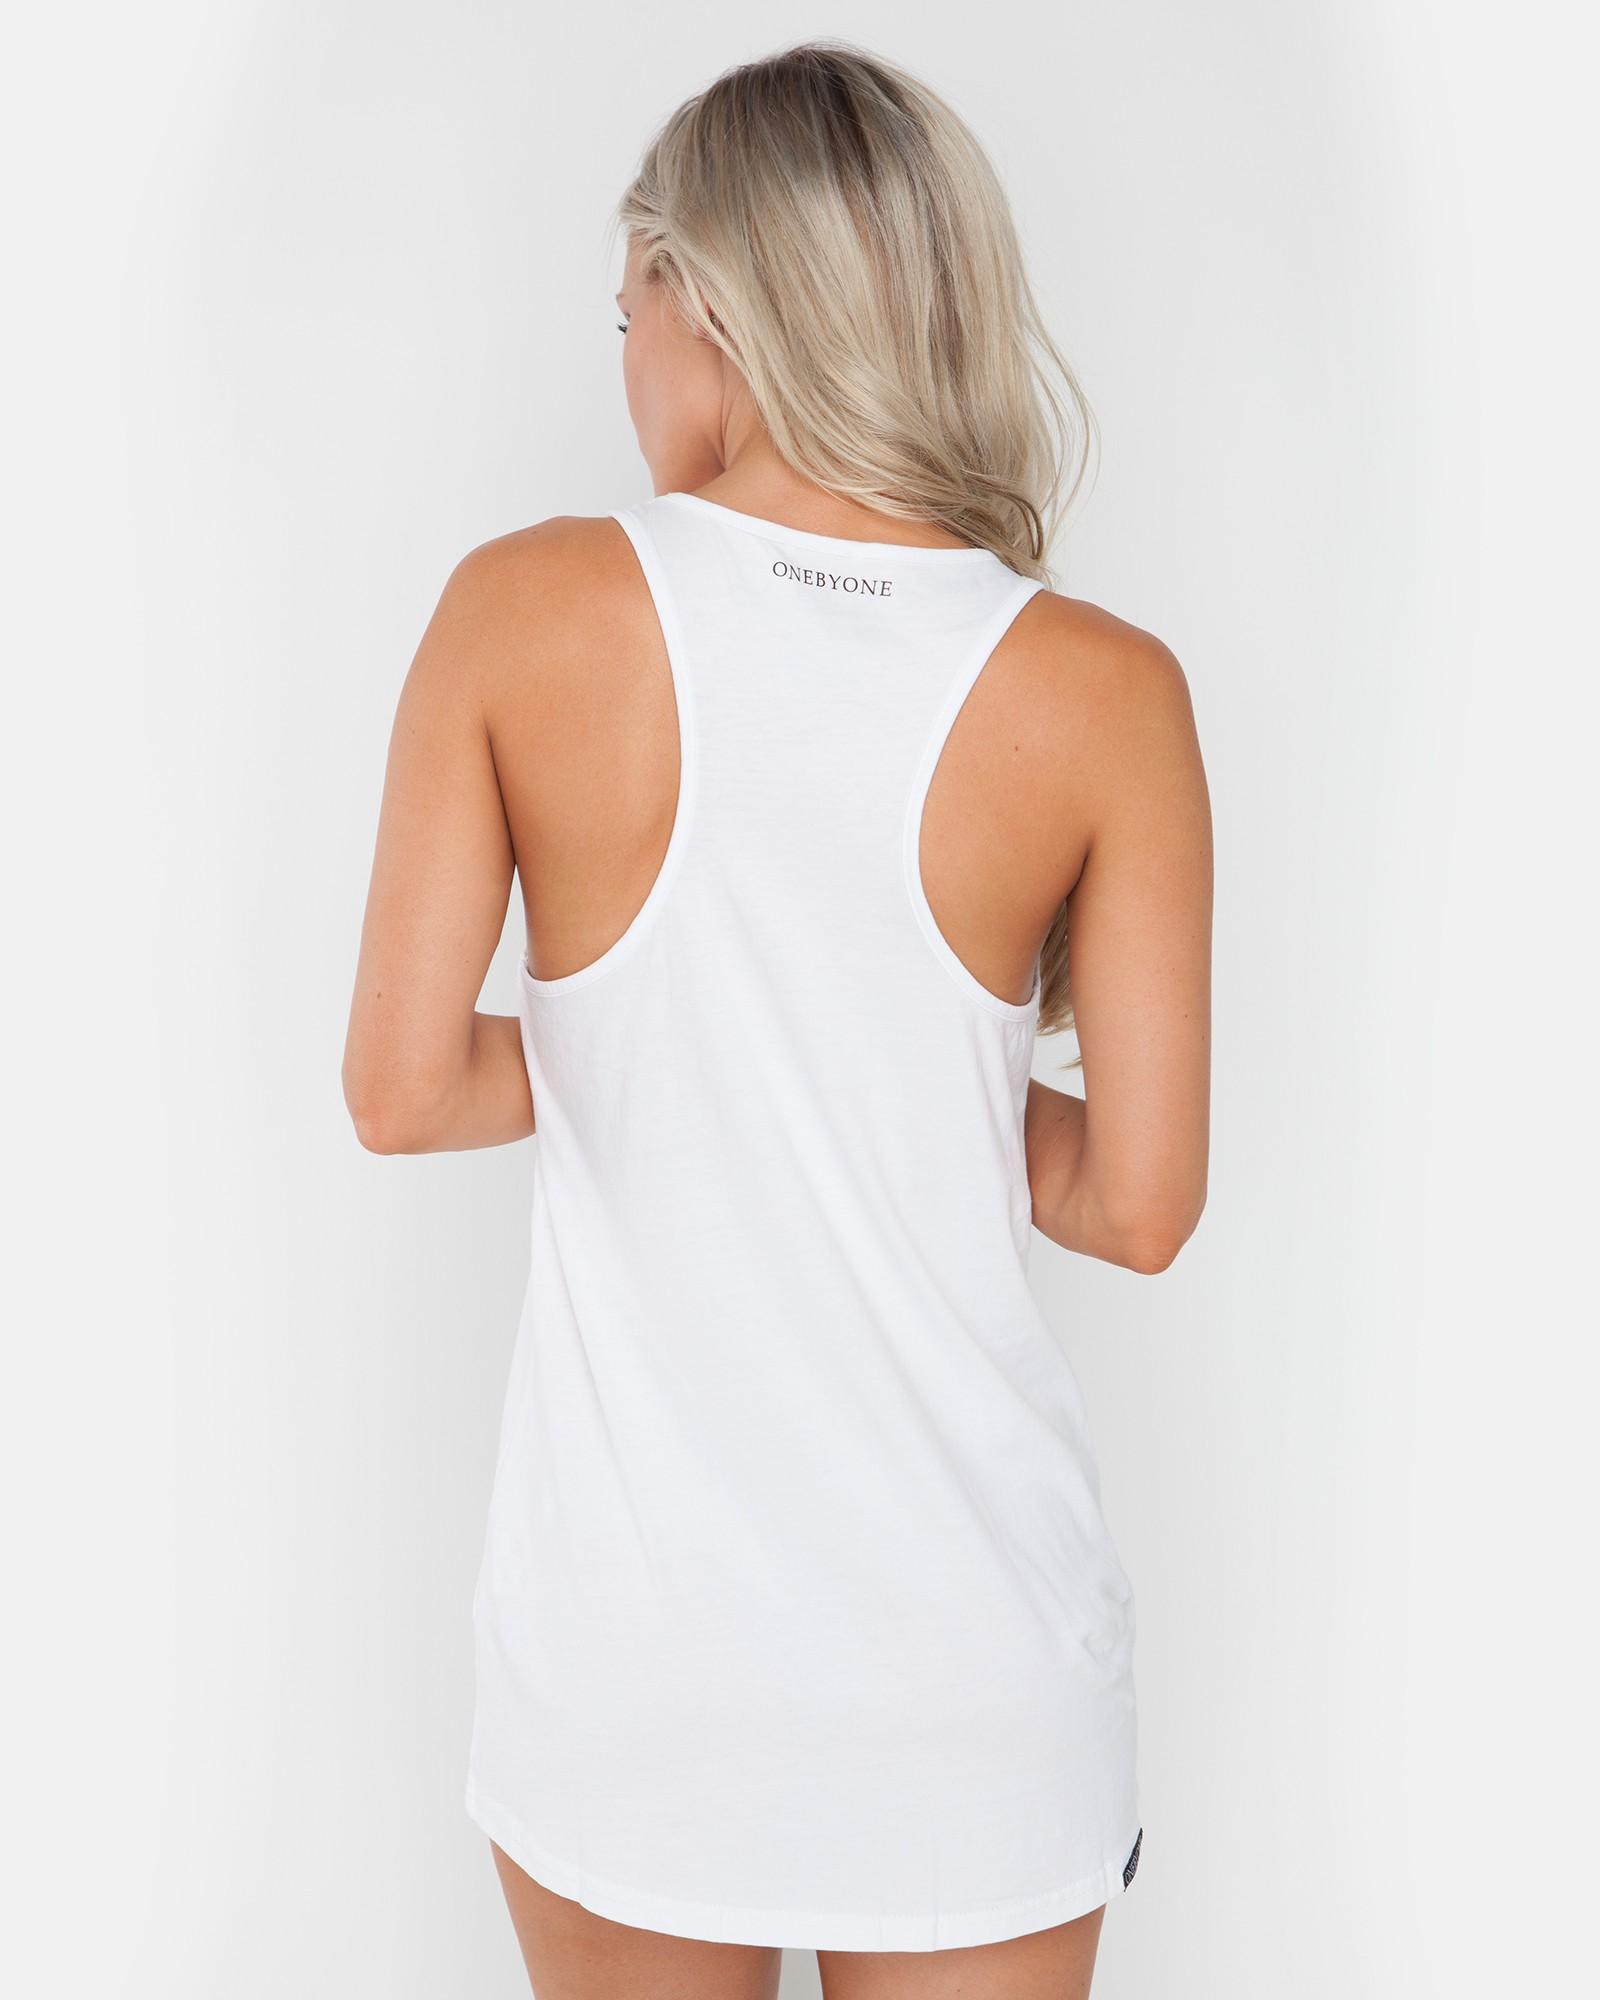 GONE HOME WHITE SINGLET